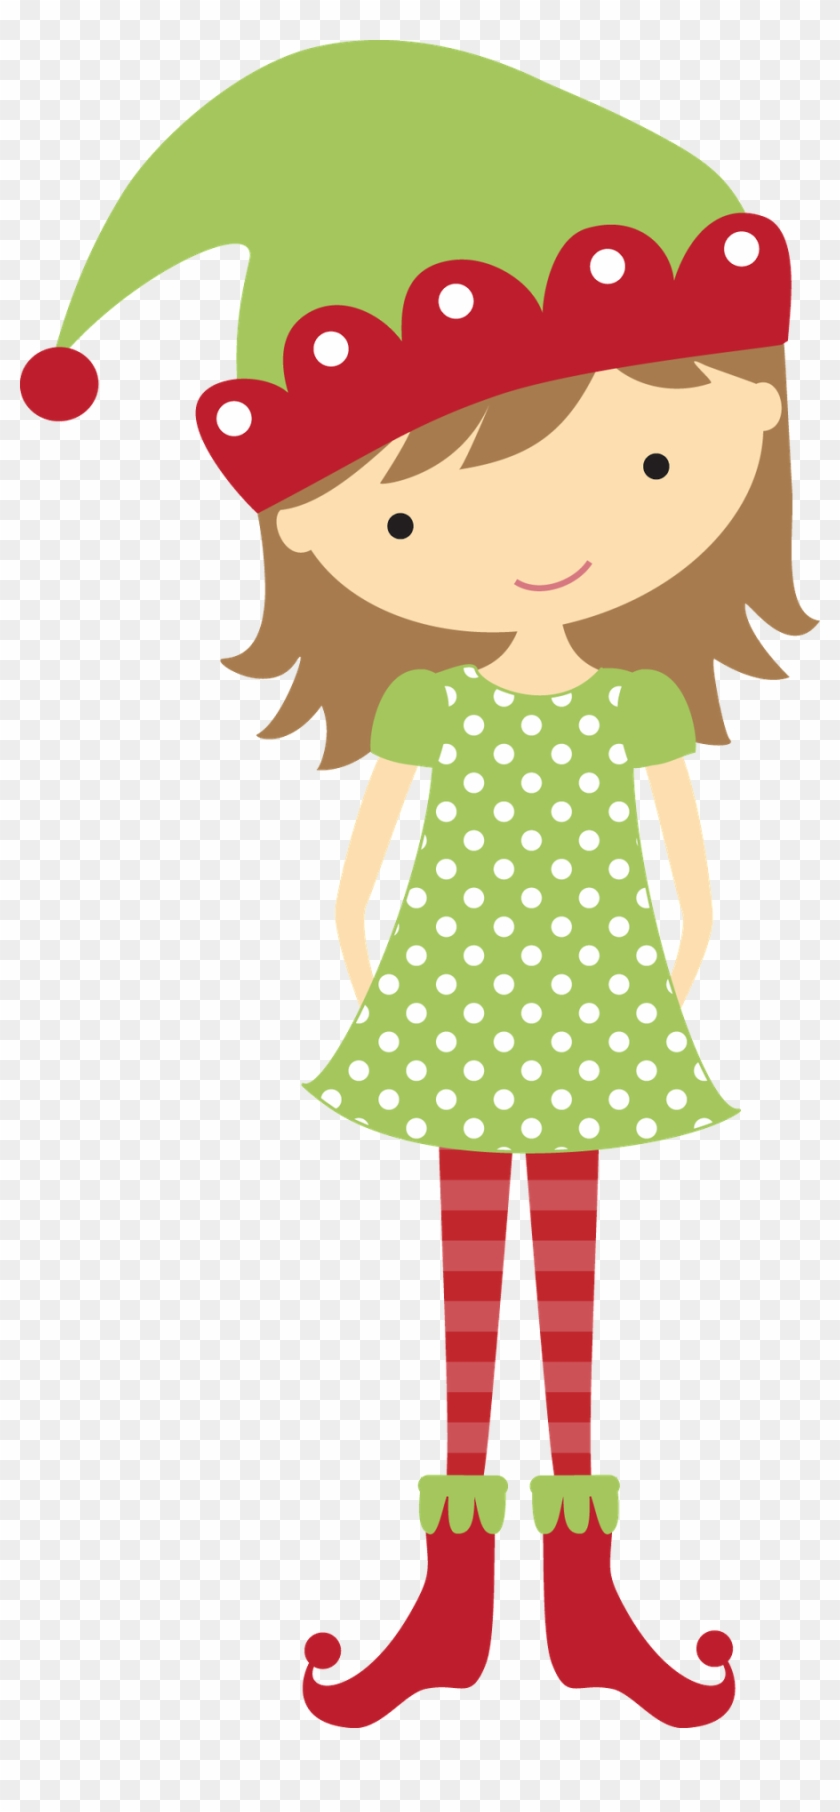 Christmas Girl Elf Clip Art - Christmas Elf Girl Clip Art #290255